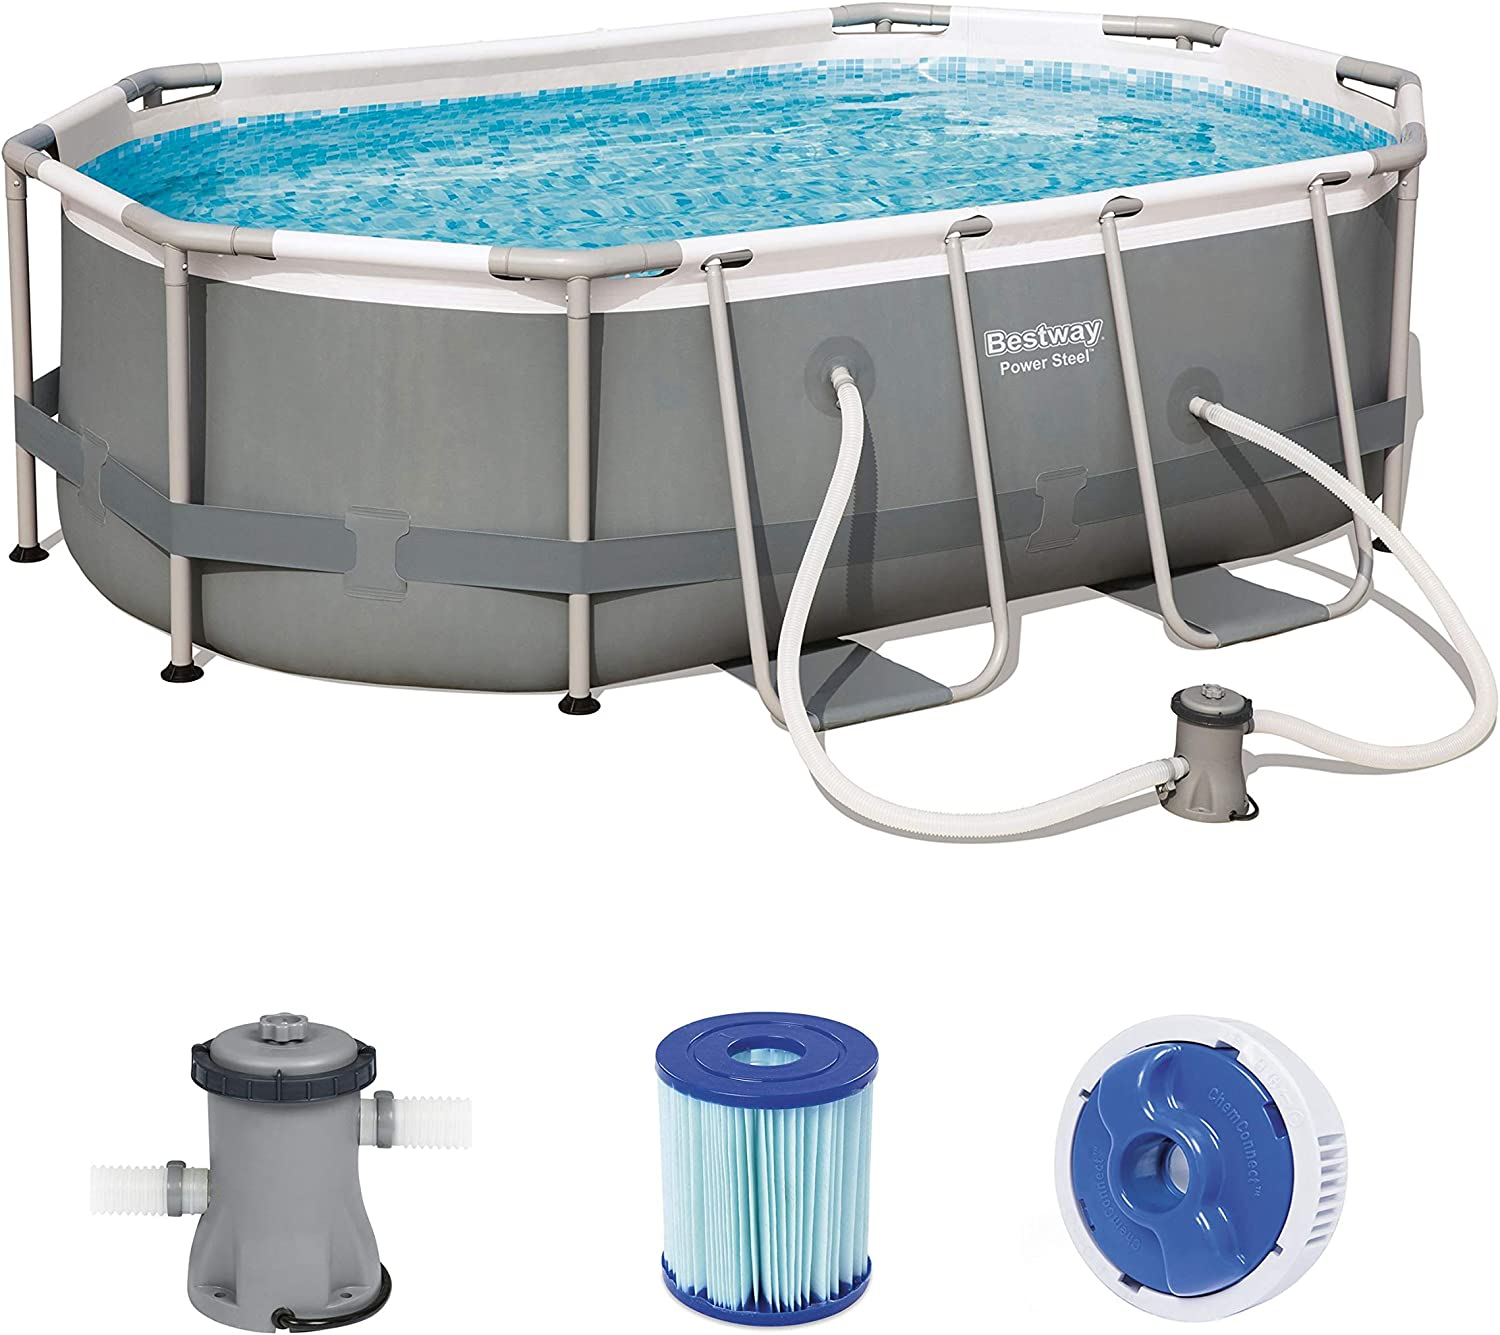 Bestway 56617 de GS19 Power Steel Pool 300 x 200 x 84 cm, Ovalado ...